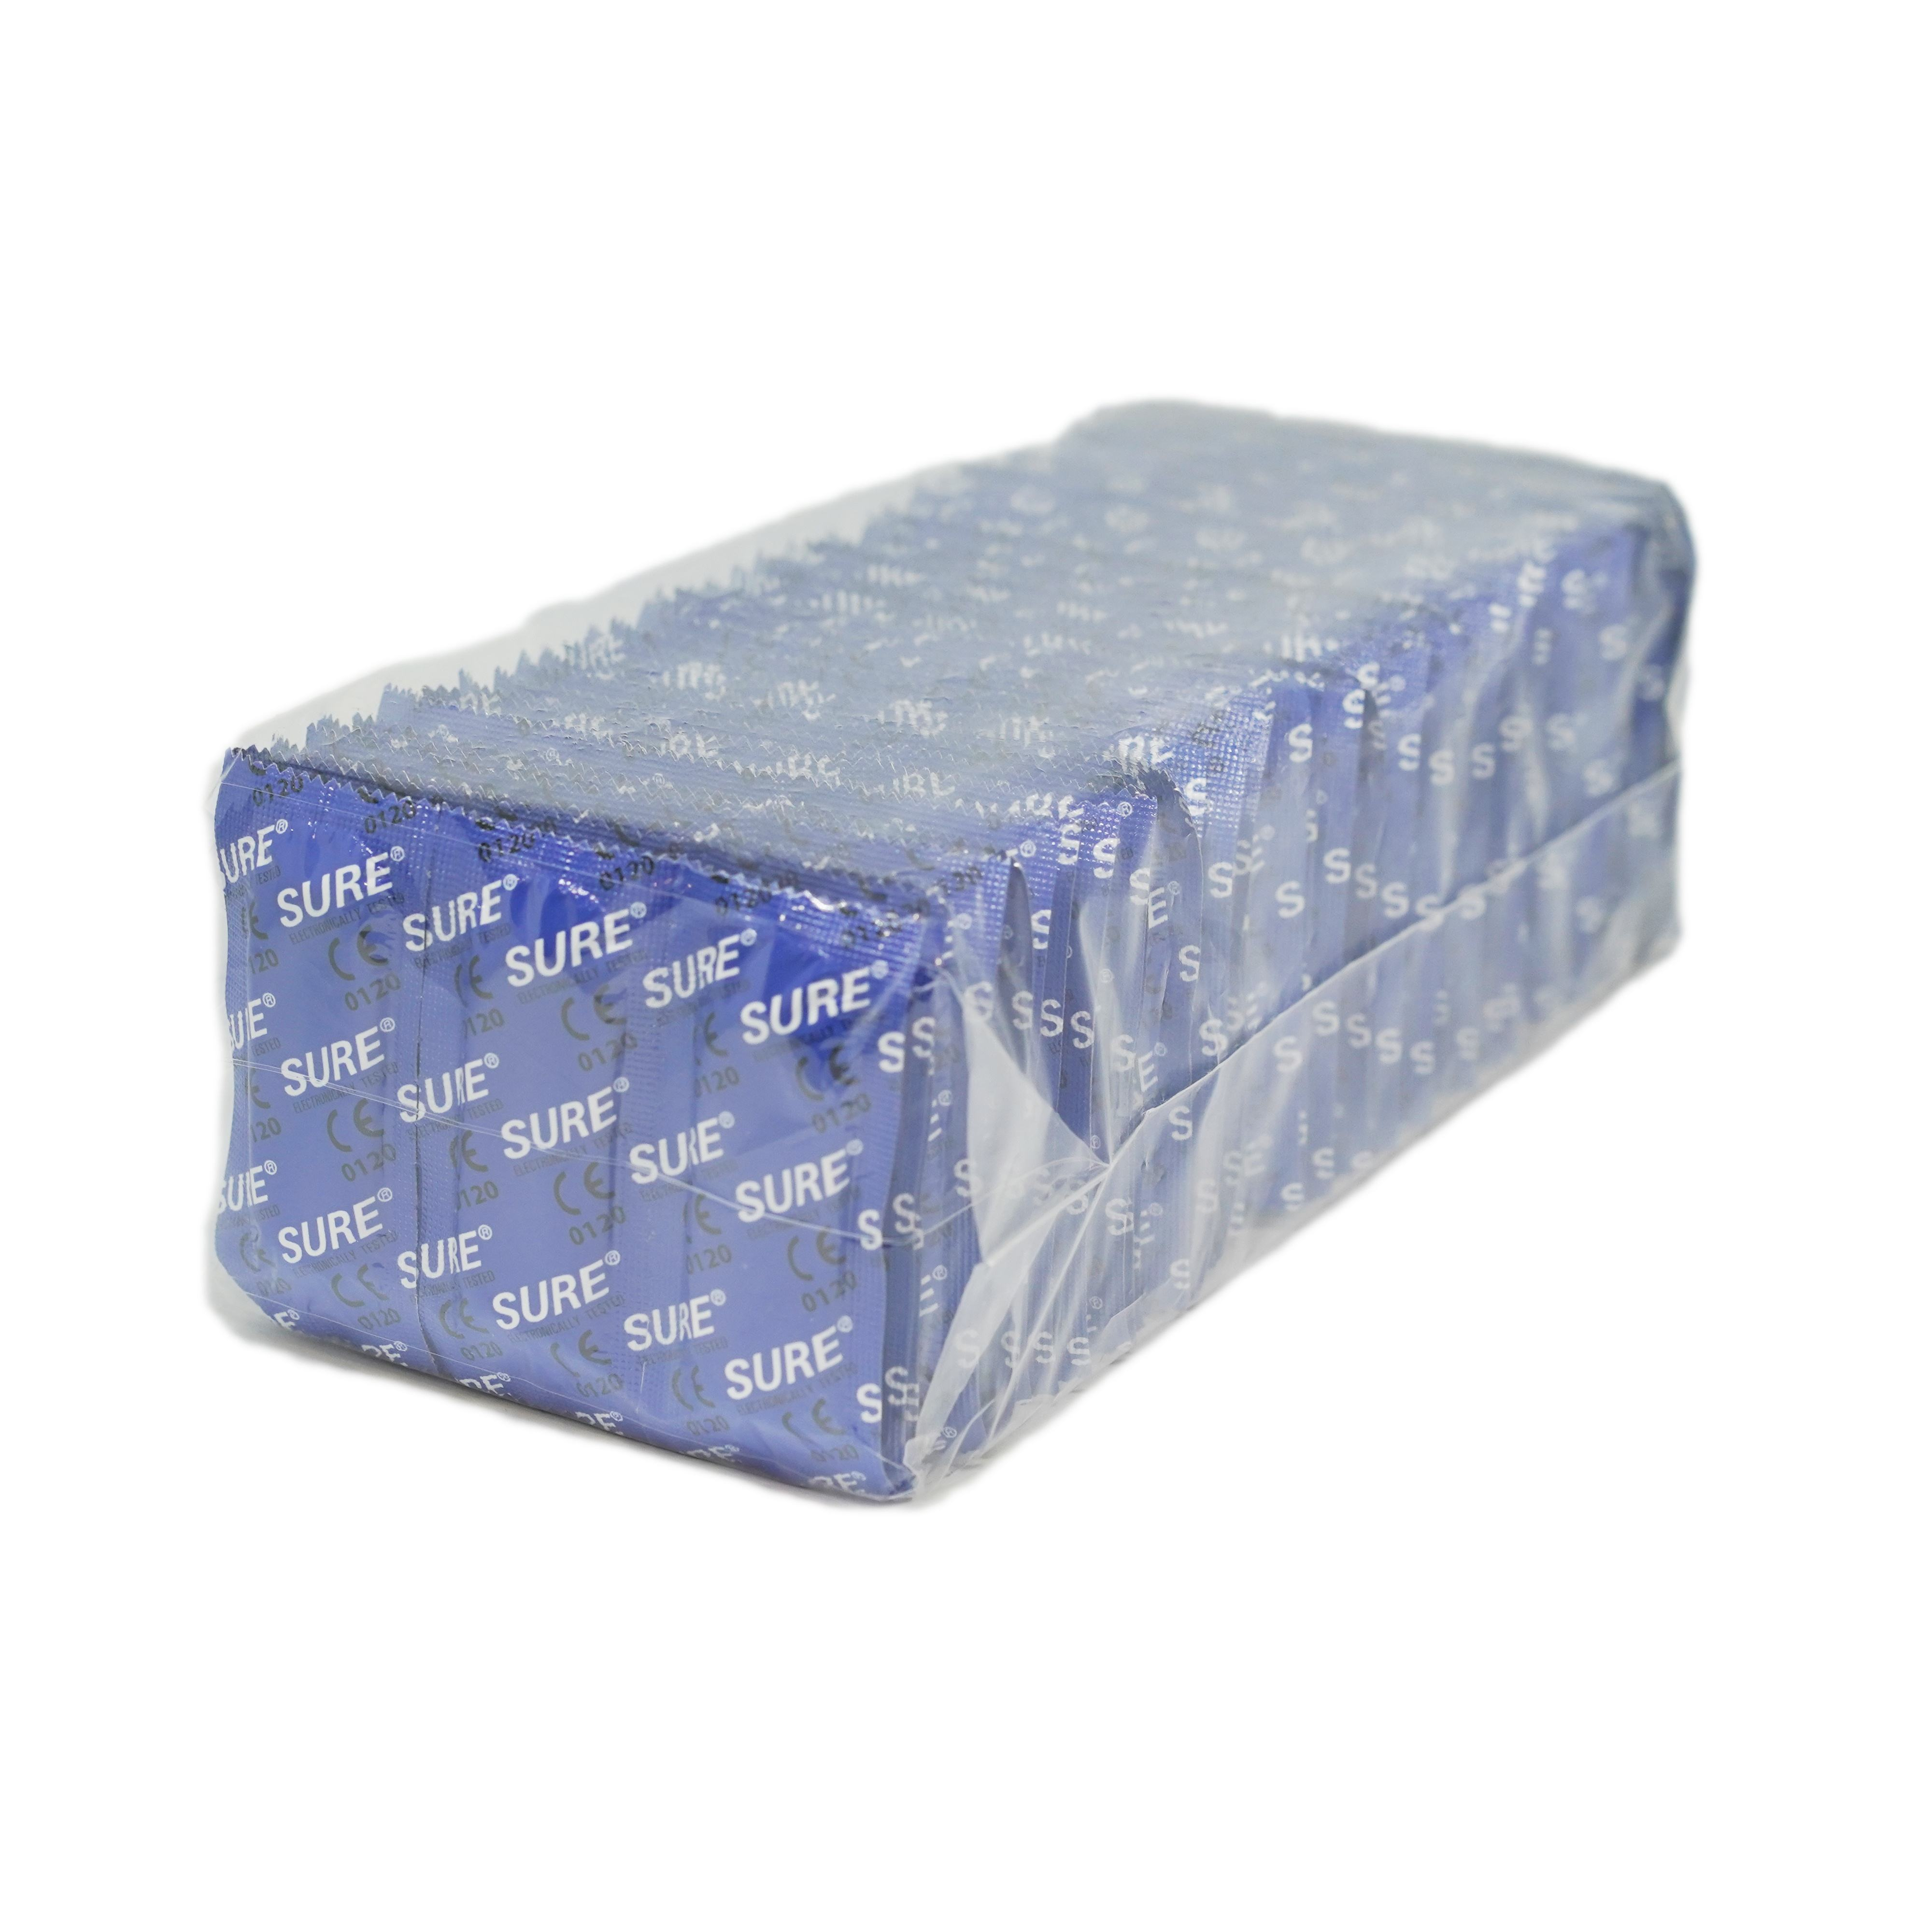 Fast Delivery Plain Ribbed Dotted Ultra Thin 144 Pieces Rectangular Bulk Pack SURE Condoms Manufacturer Price